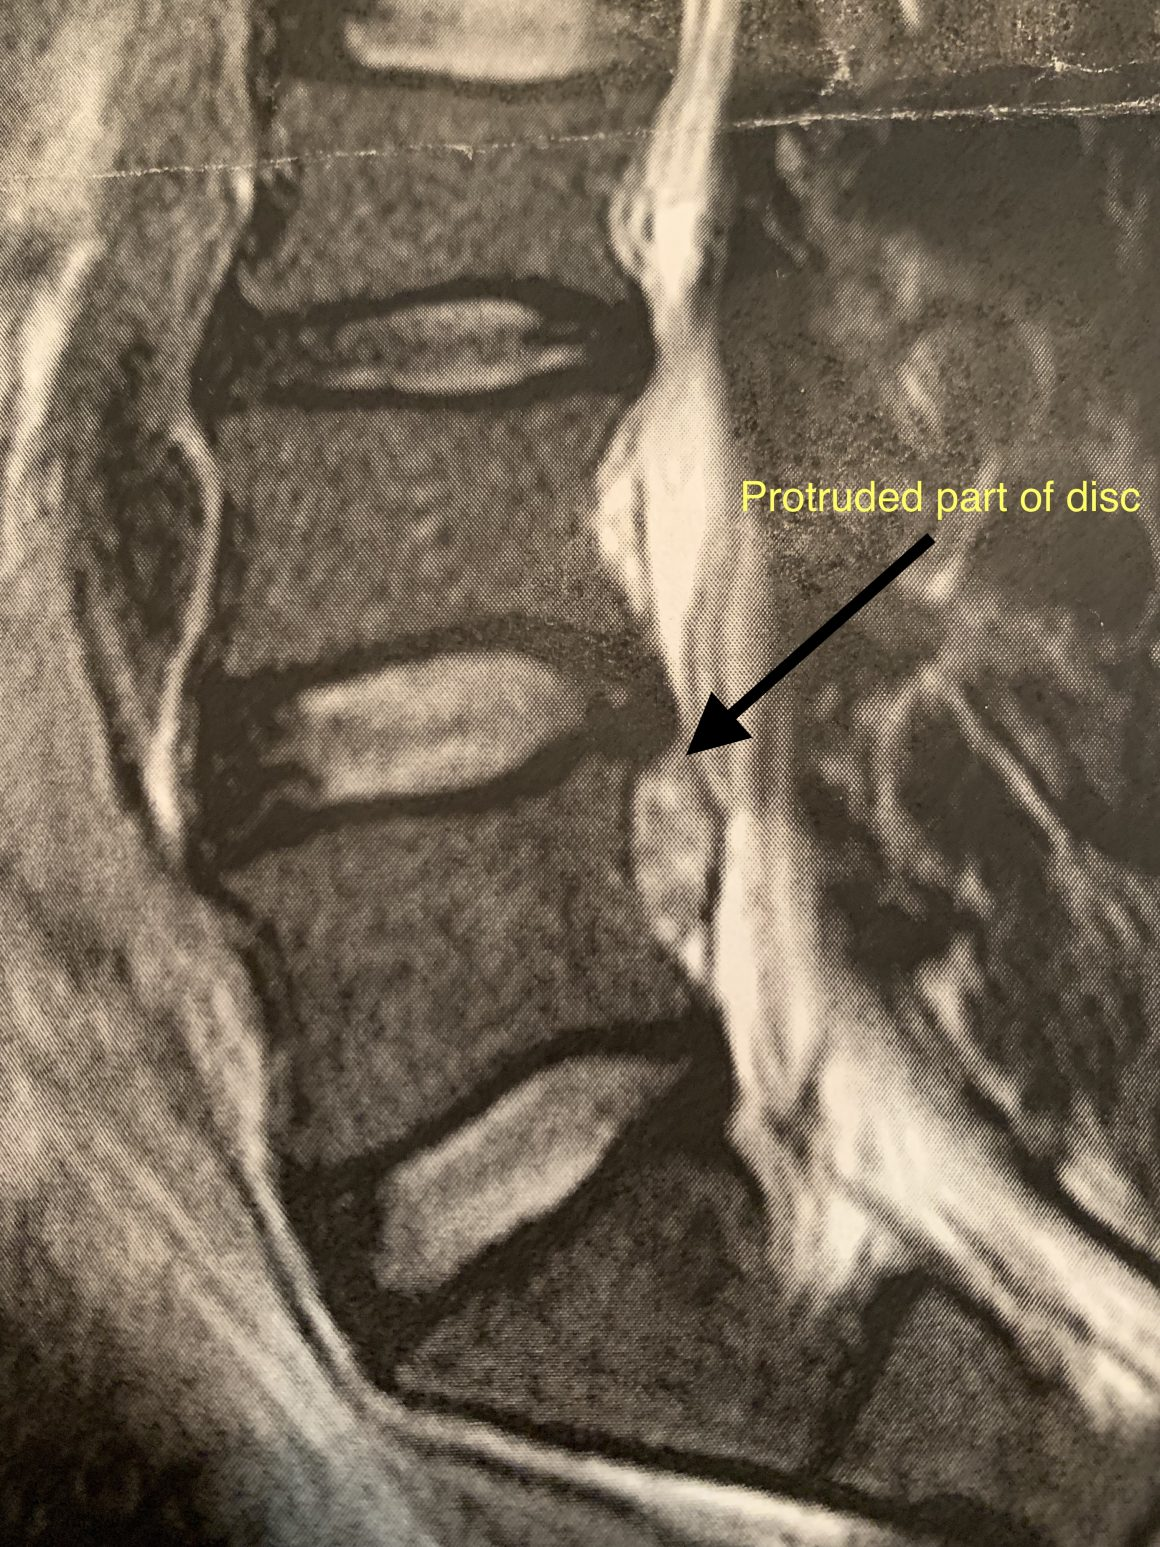 Picture of my back injury that shows where the disc has protruded.